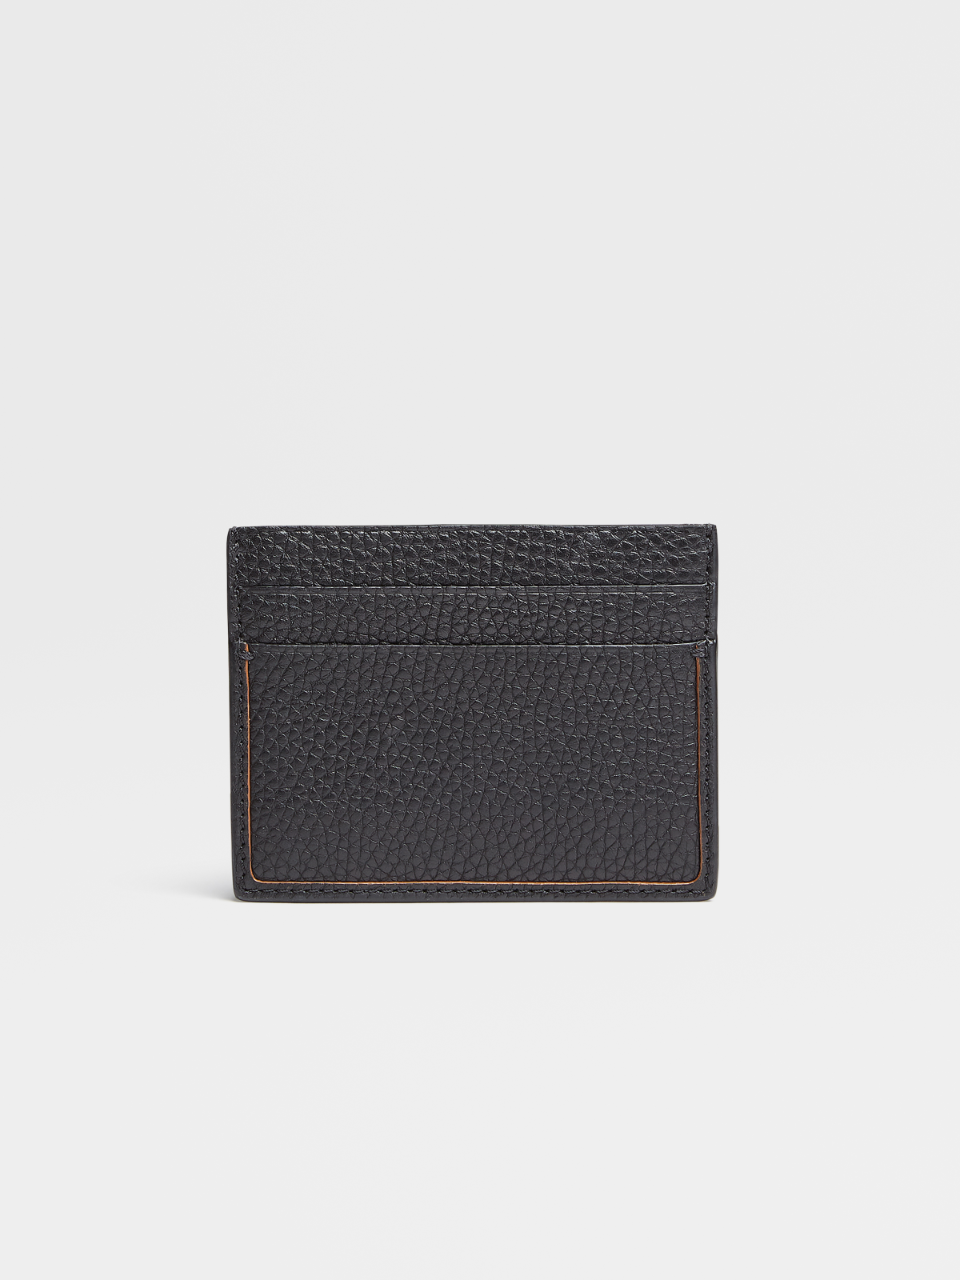 Grained Calfskin Blazer Simple Card Case